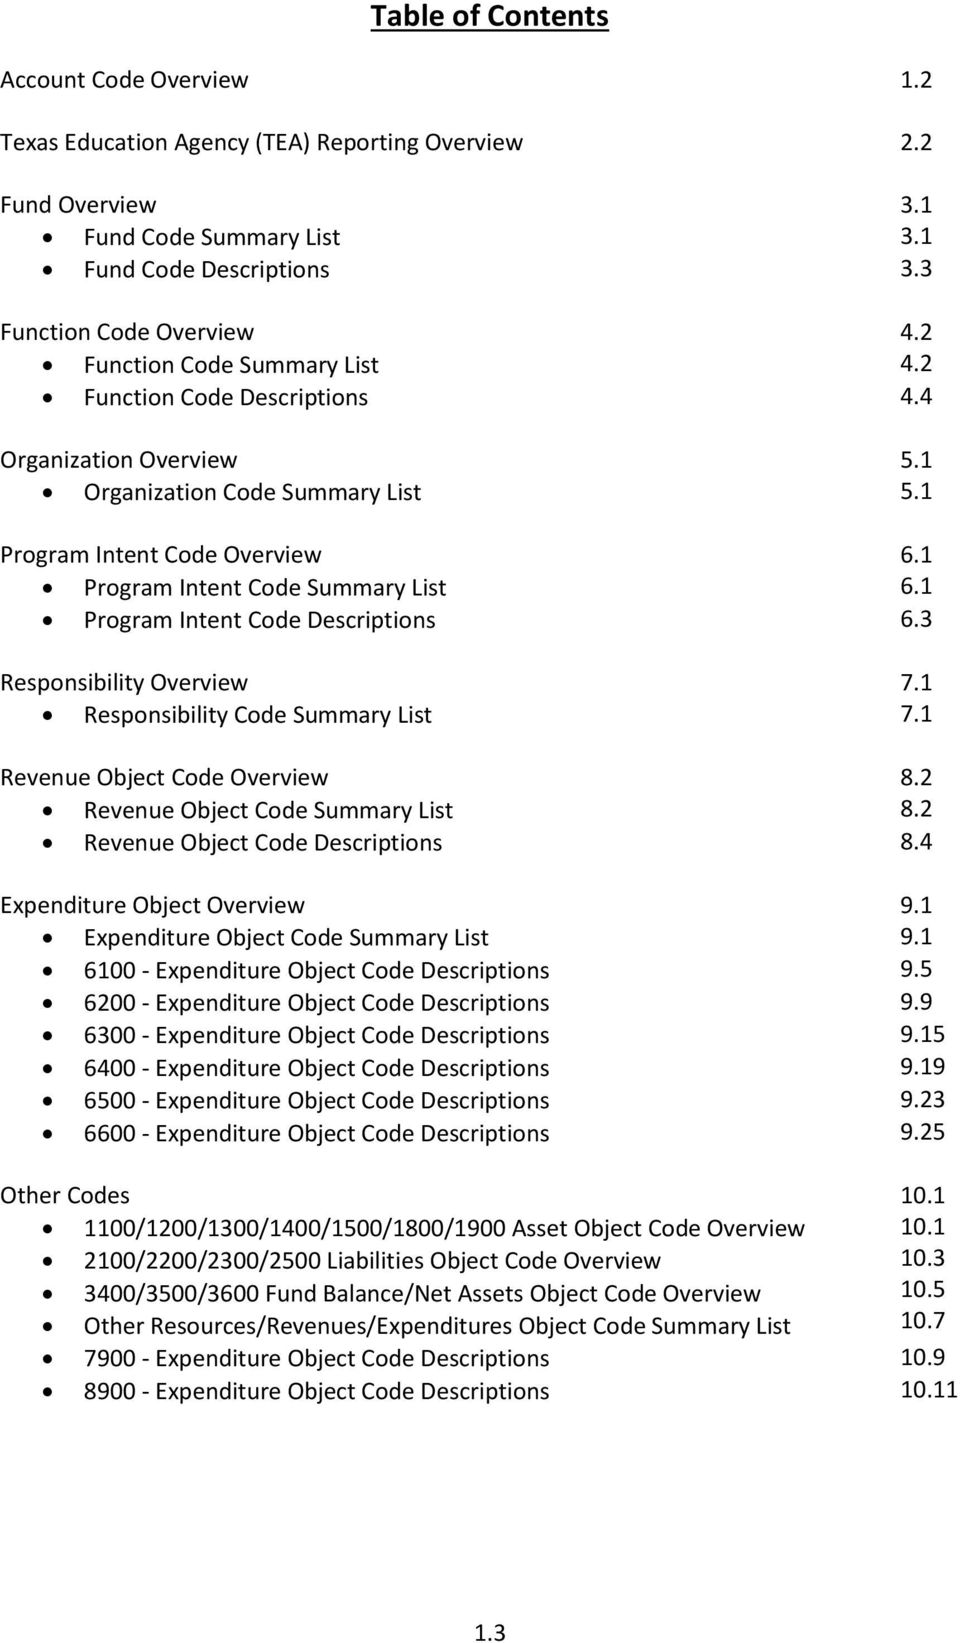 1 Program Intent Code Descriptions 6.3 Responsibility Overview 7.1 Responsibility Code Summary List 7.1 Revenue Object Code Overview 8.2 Revenue Object Code Summary List 8.